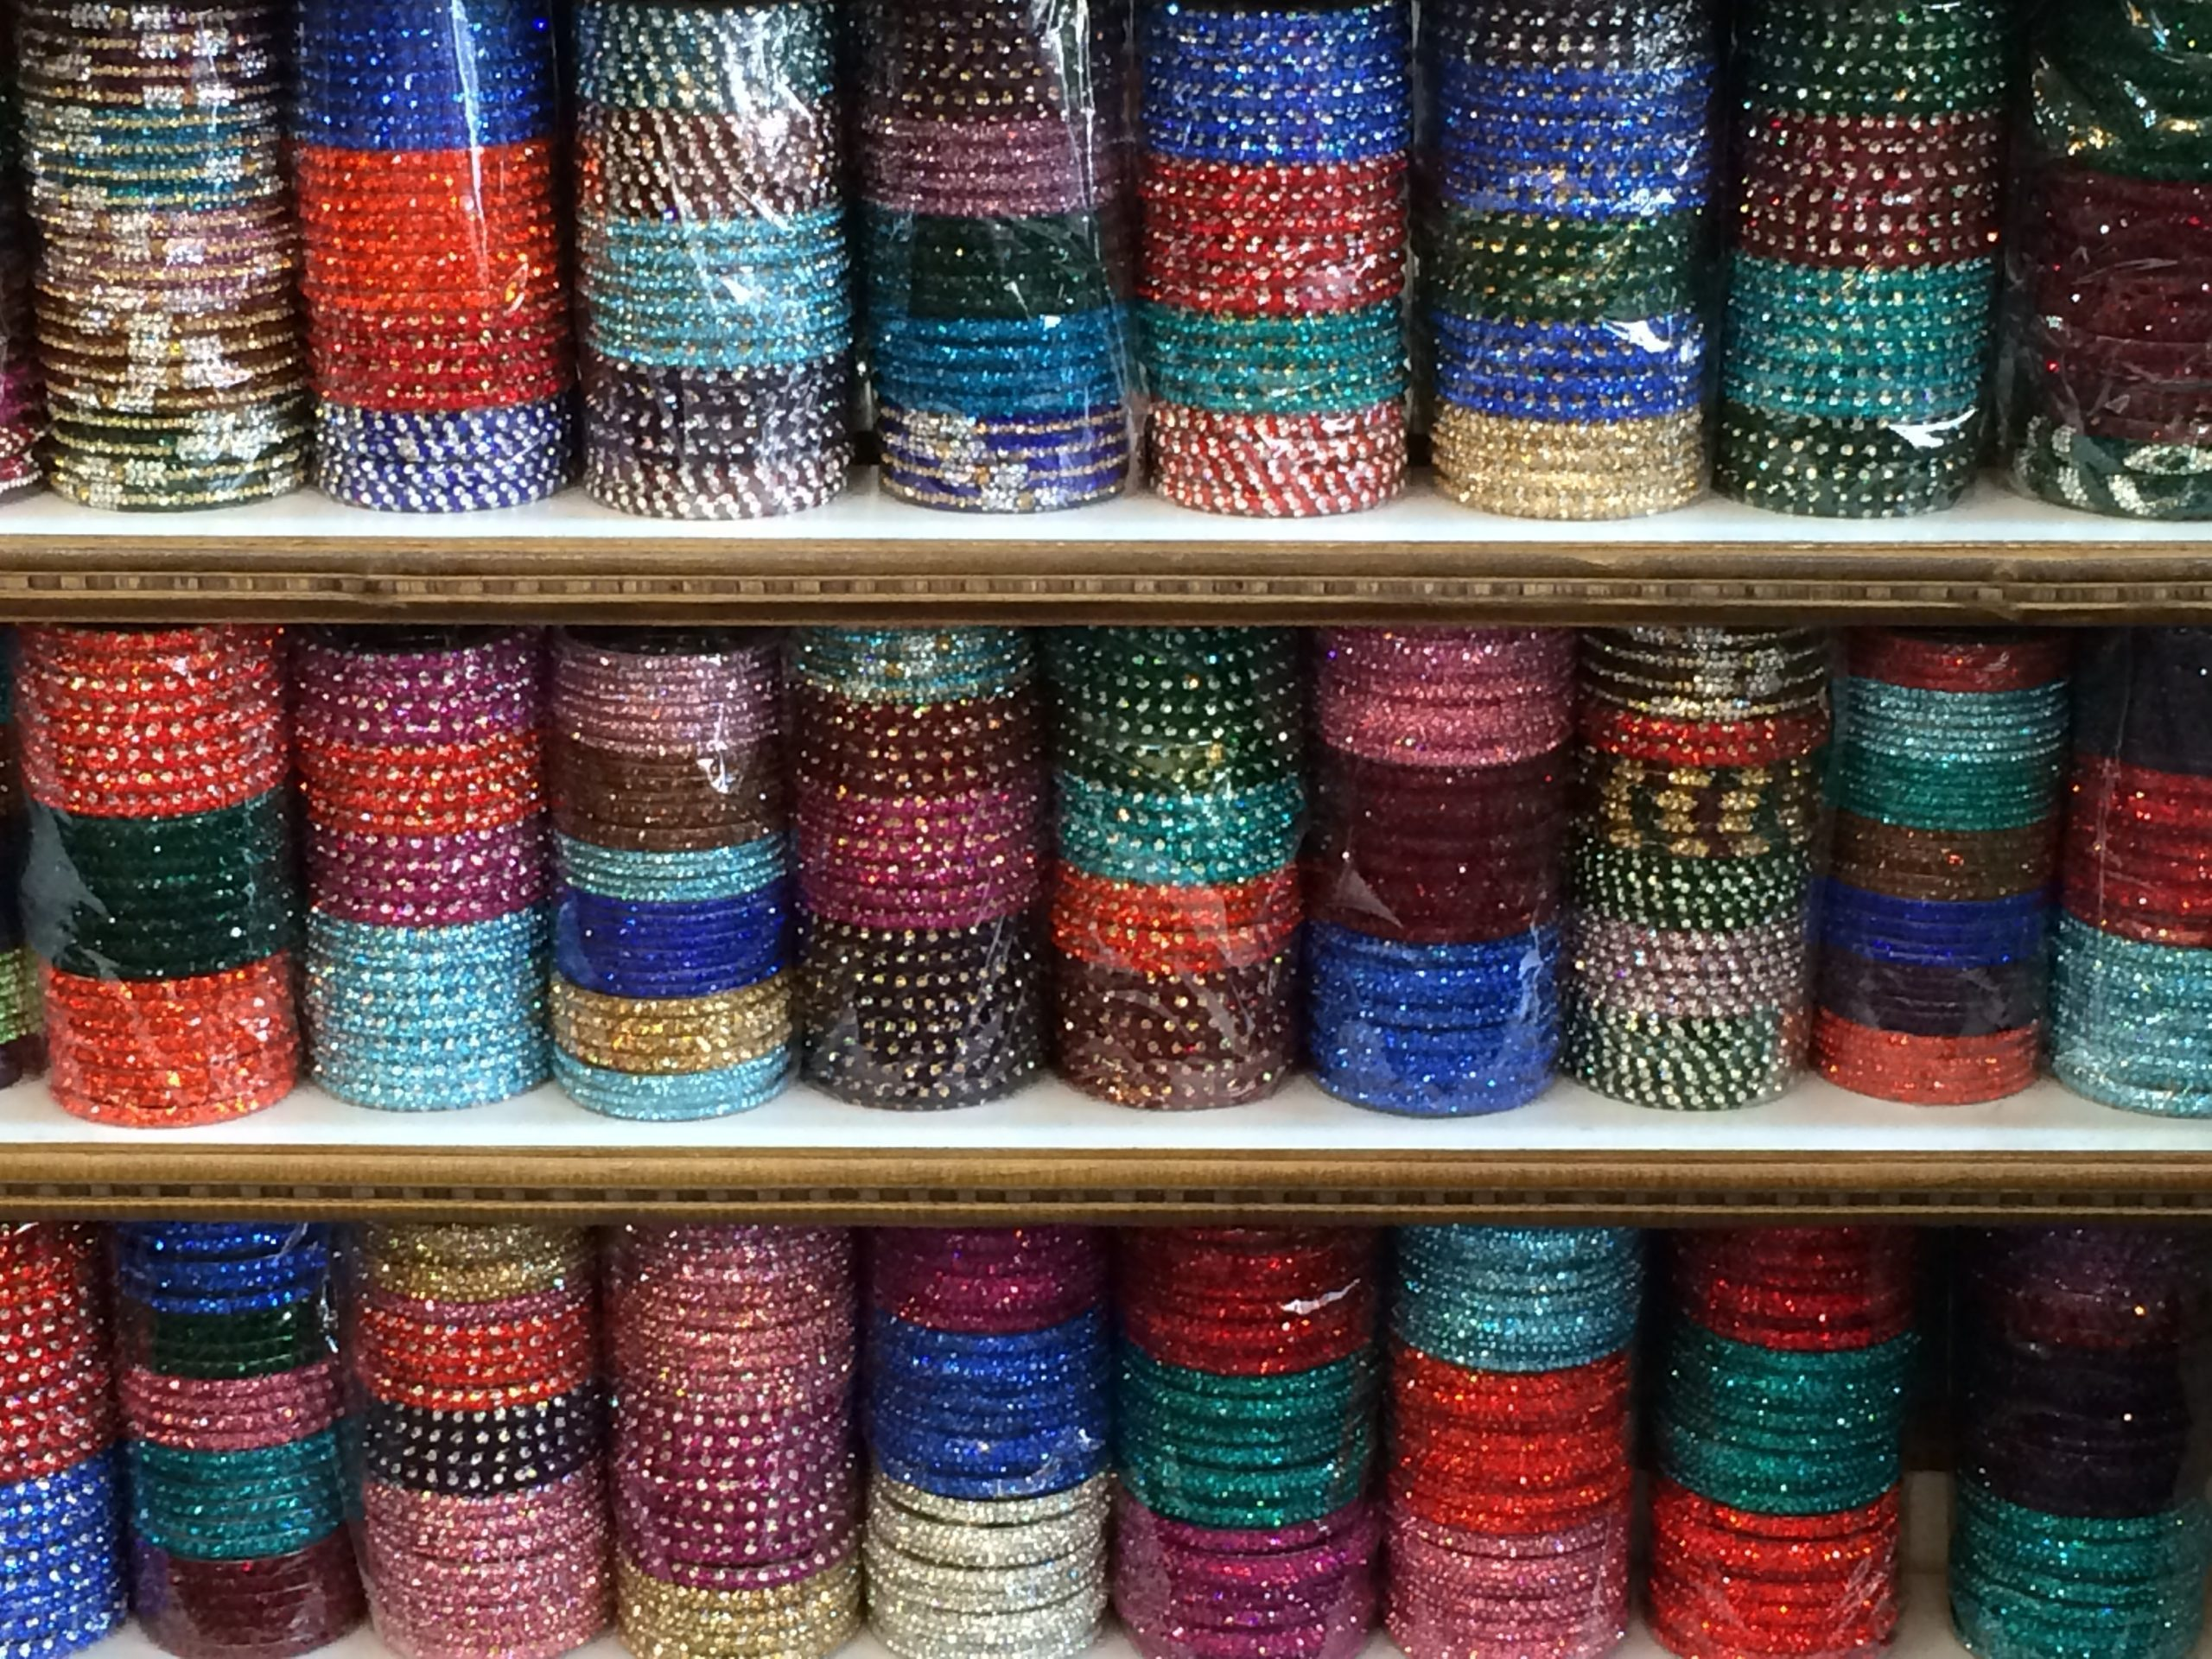 shelves of brightly colored bangles